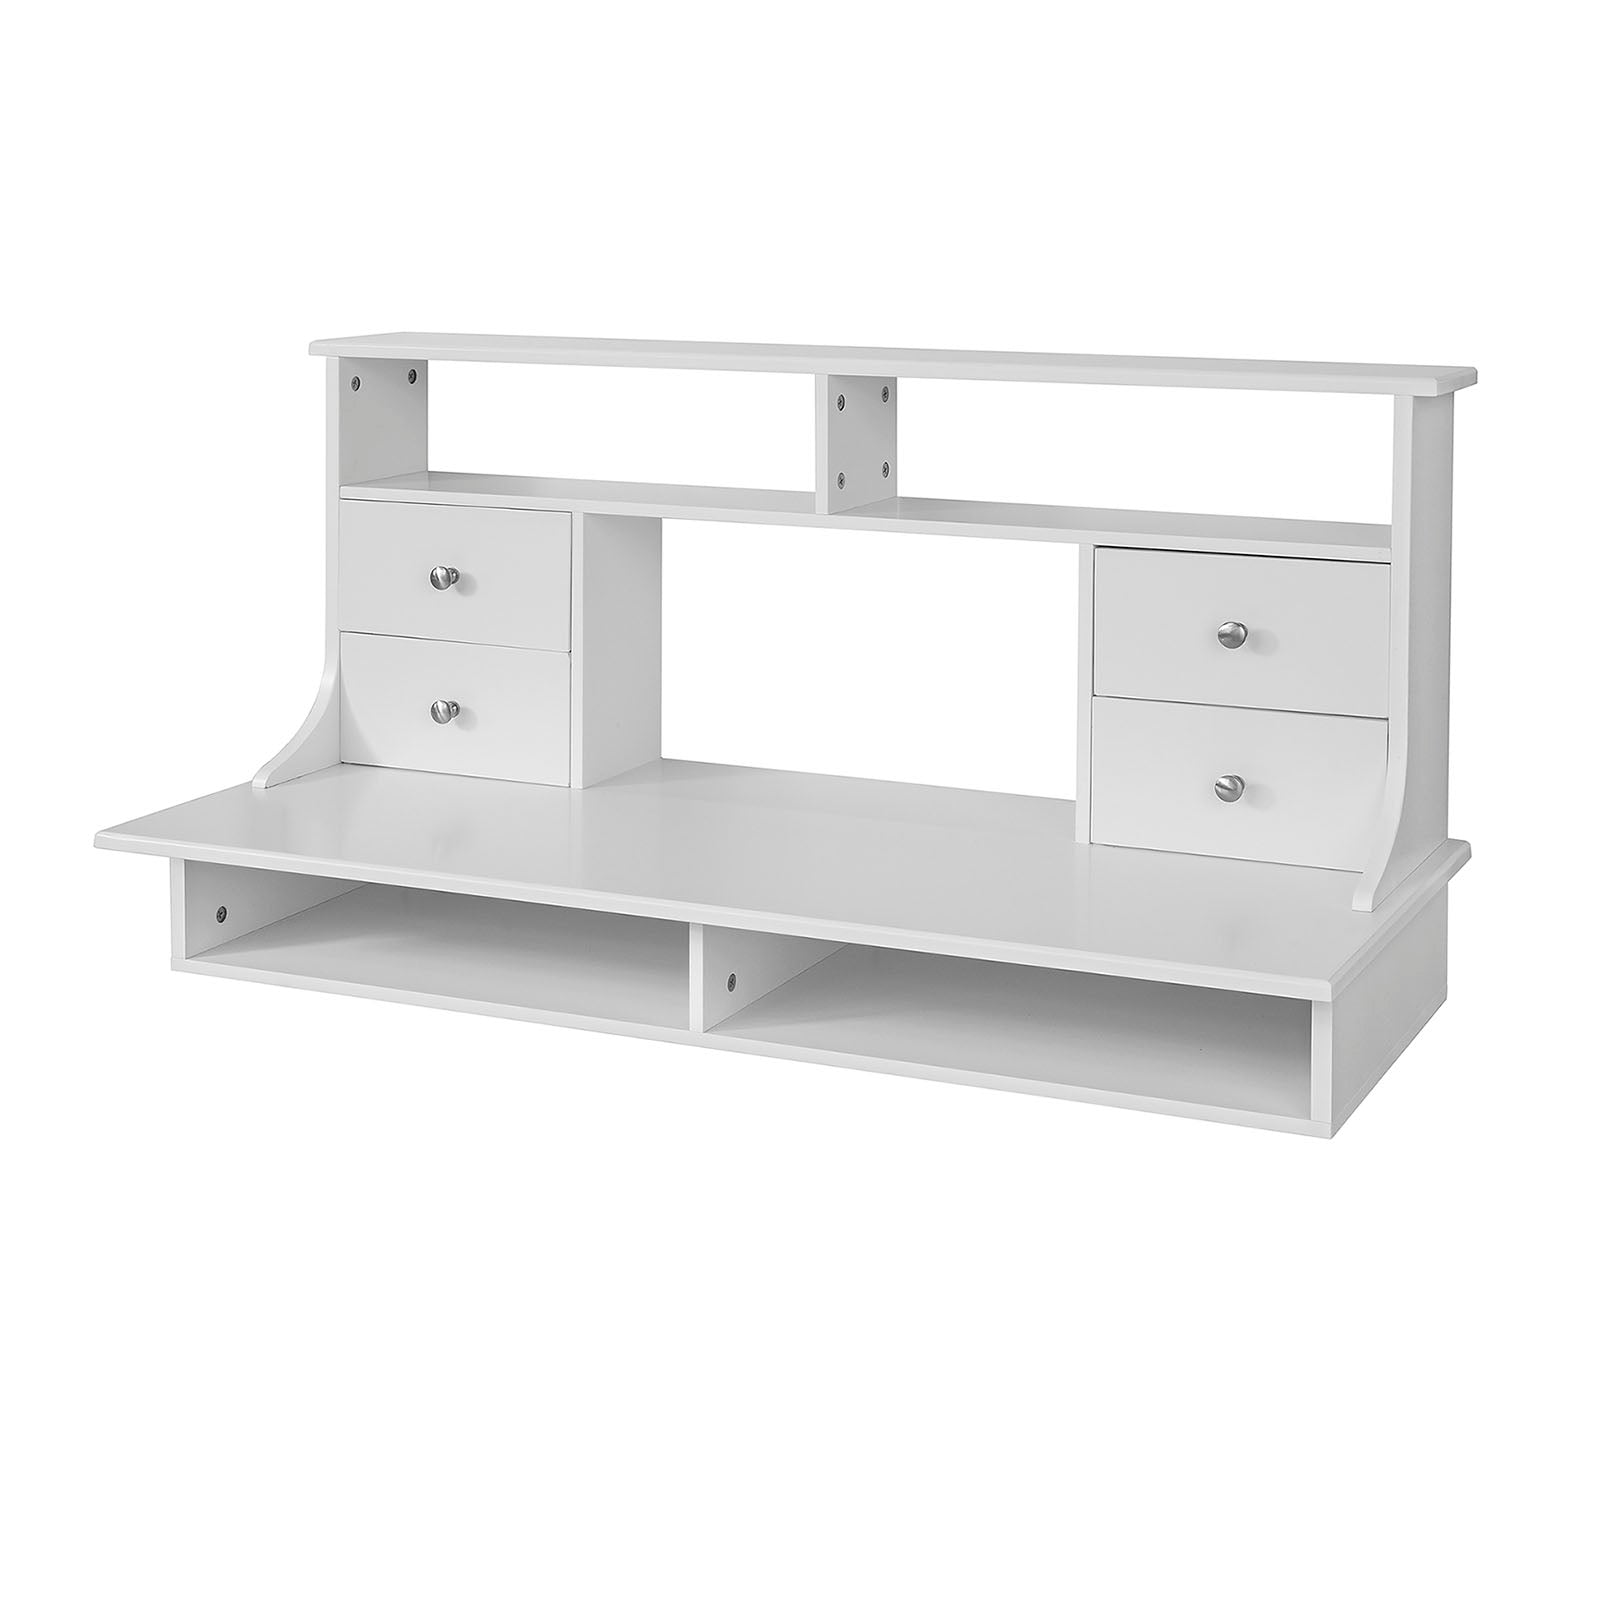 SoBuy Wall Table Desk With Drawers White Space Saving Desk With Bookcase Fwt49-W